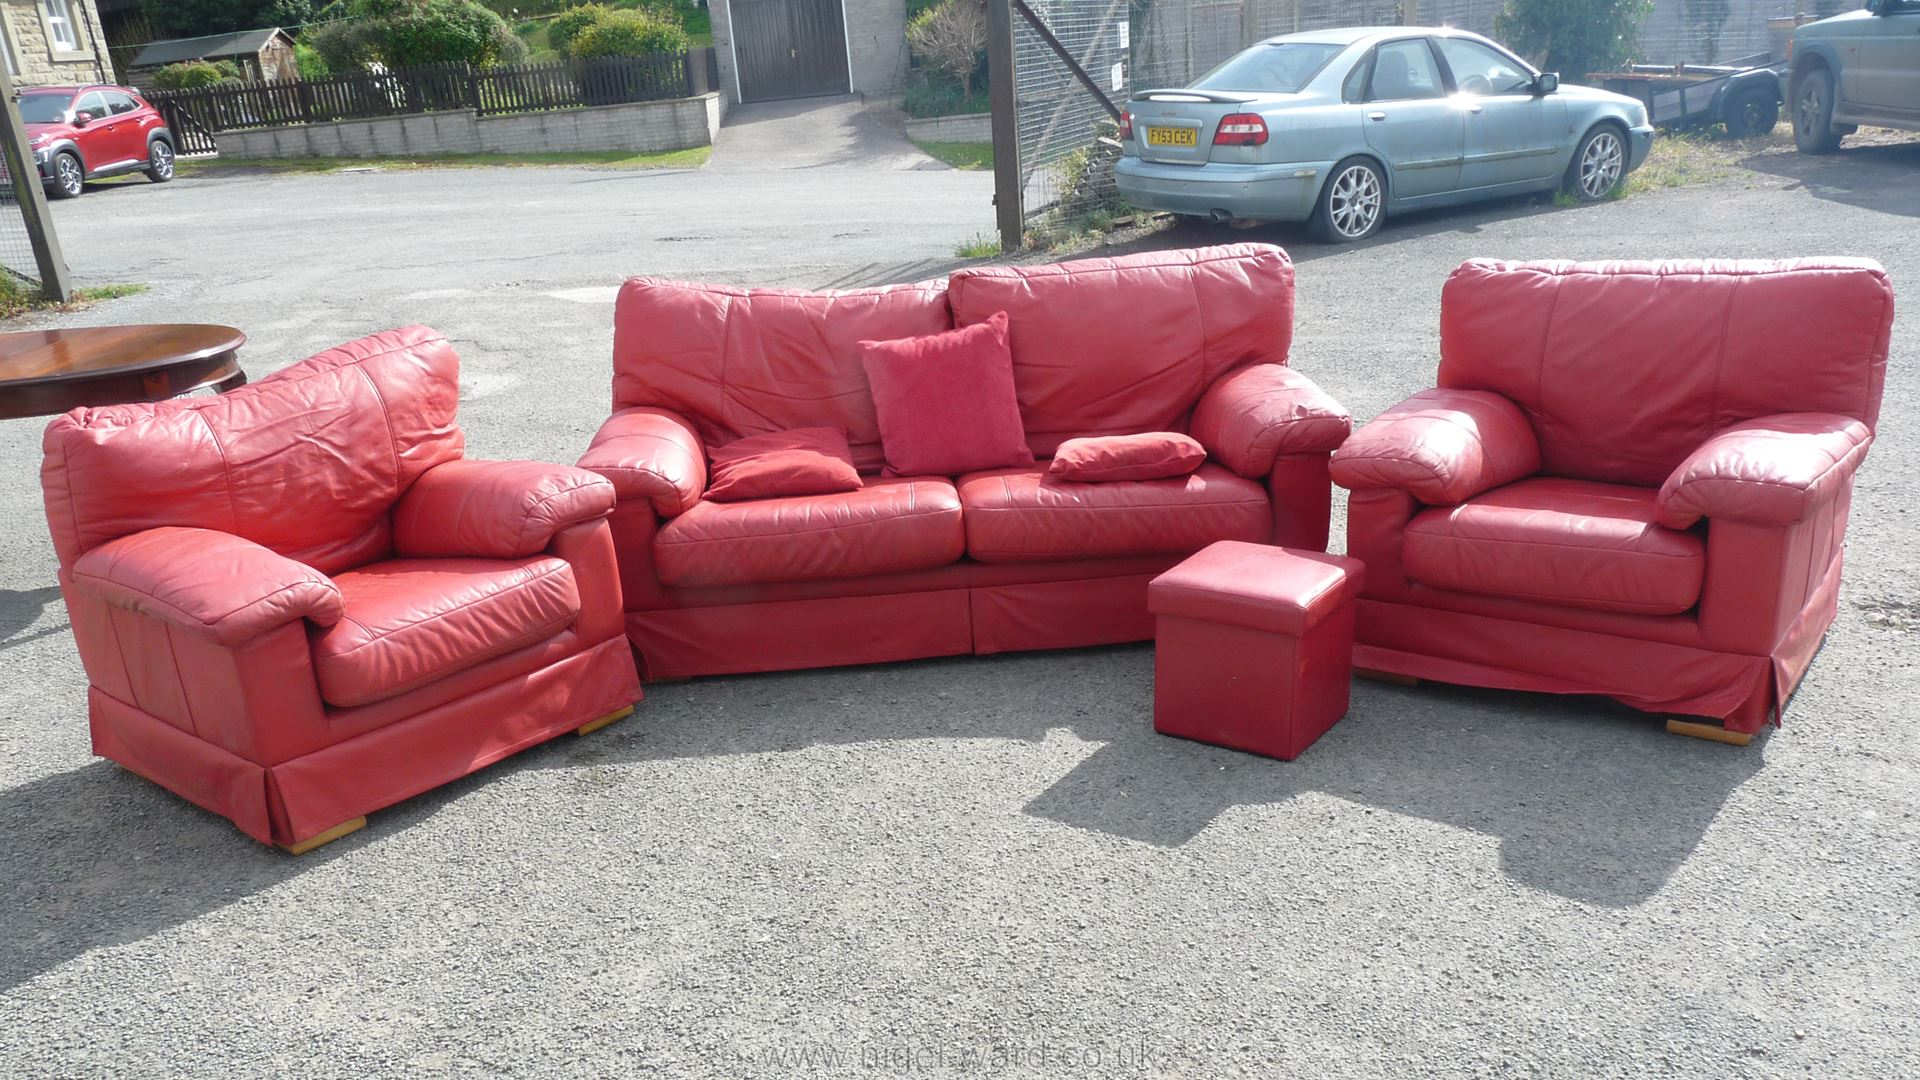 A red hide upholstered lounge suite comprising a three-seater settee and a pair of chairs.